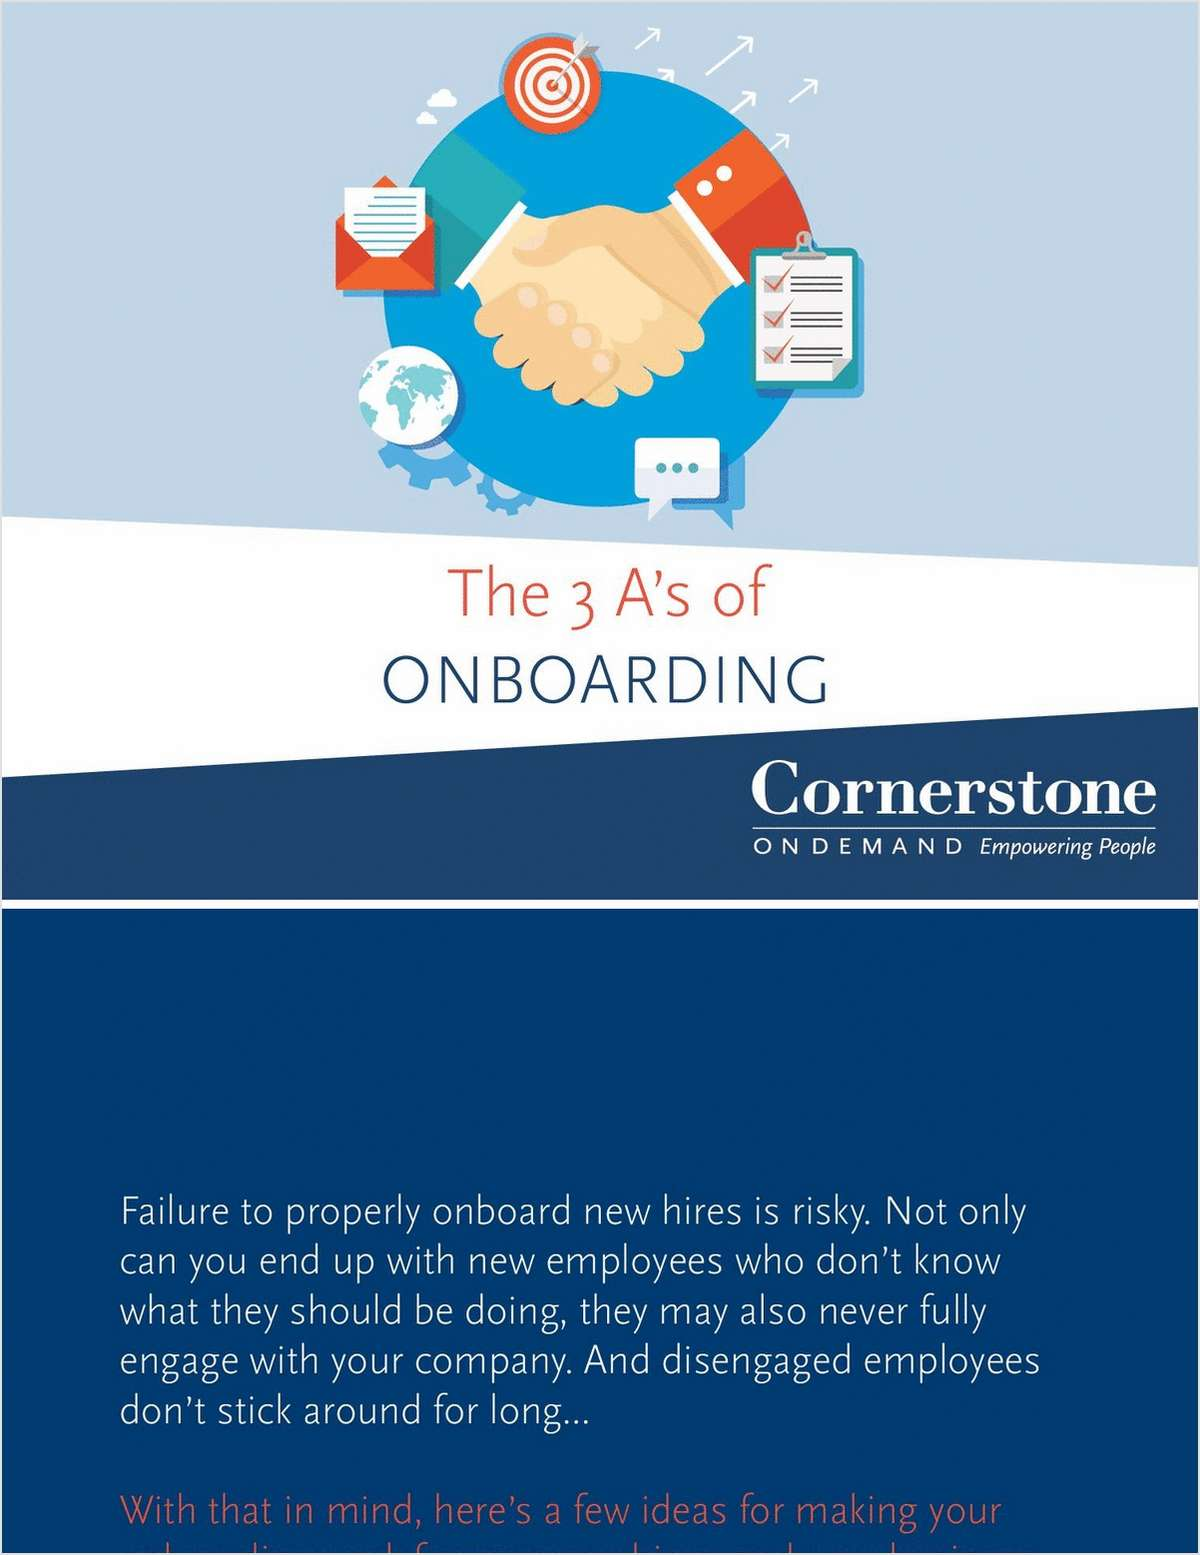 The 3 A's of Onboarding